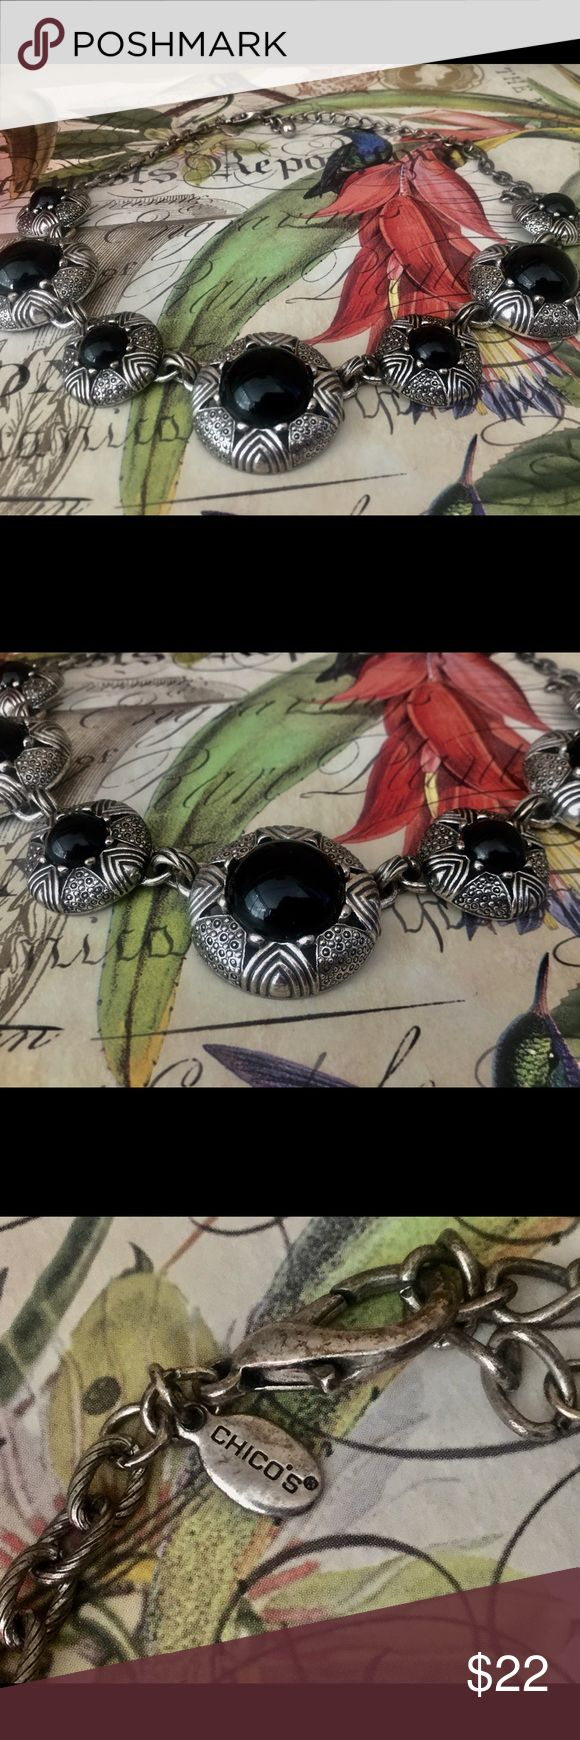 ♦️Chicos silver and black statement necklace Silver and black multi pendant necklace by Chico's Chico's Jewelry Necklaces